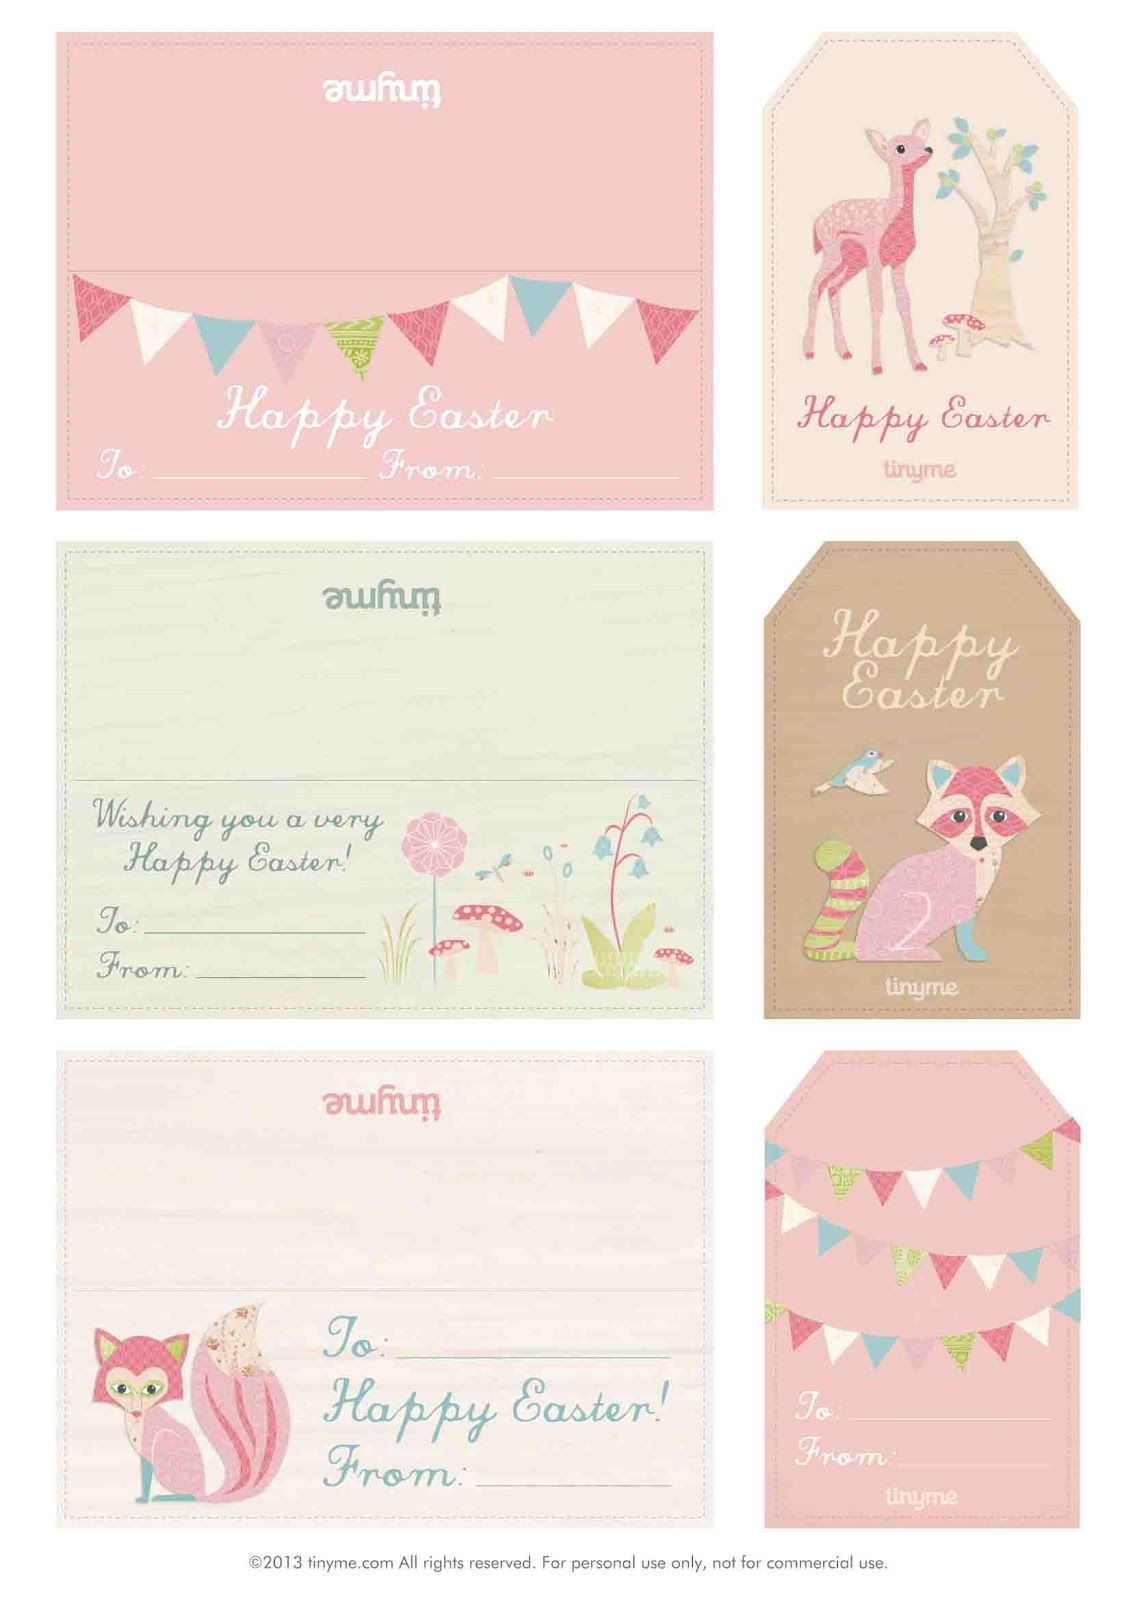 Happy easter el mn petit de la pluja bebe pinterest easter happy easter el mn petit de la pluja birthday gift wrappingbirthday giftsprintable negle Images